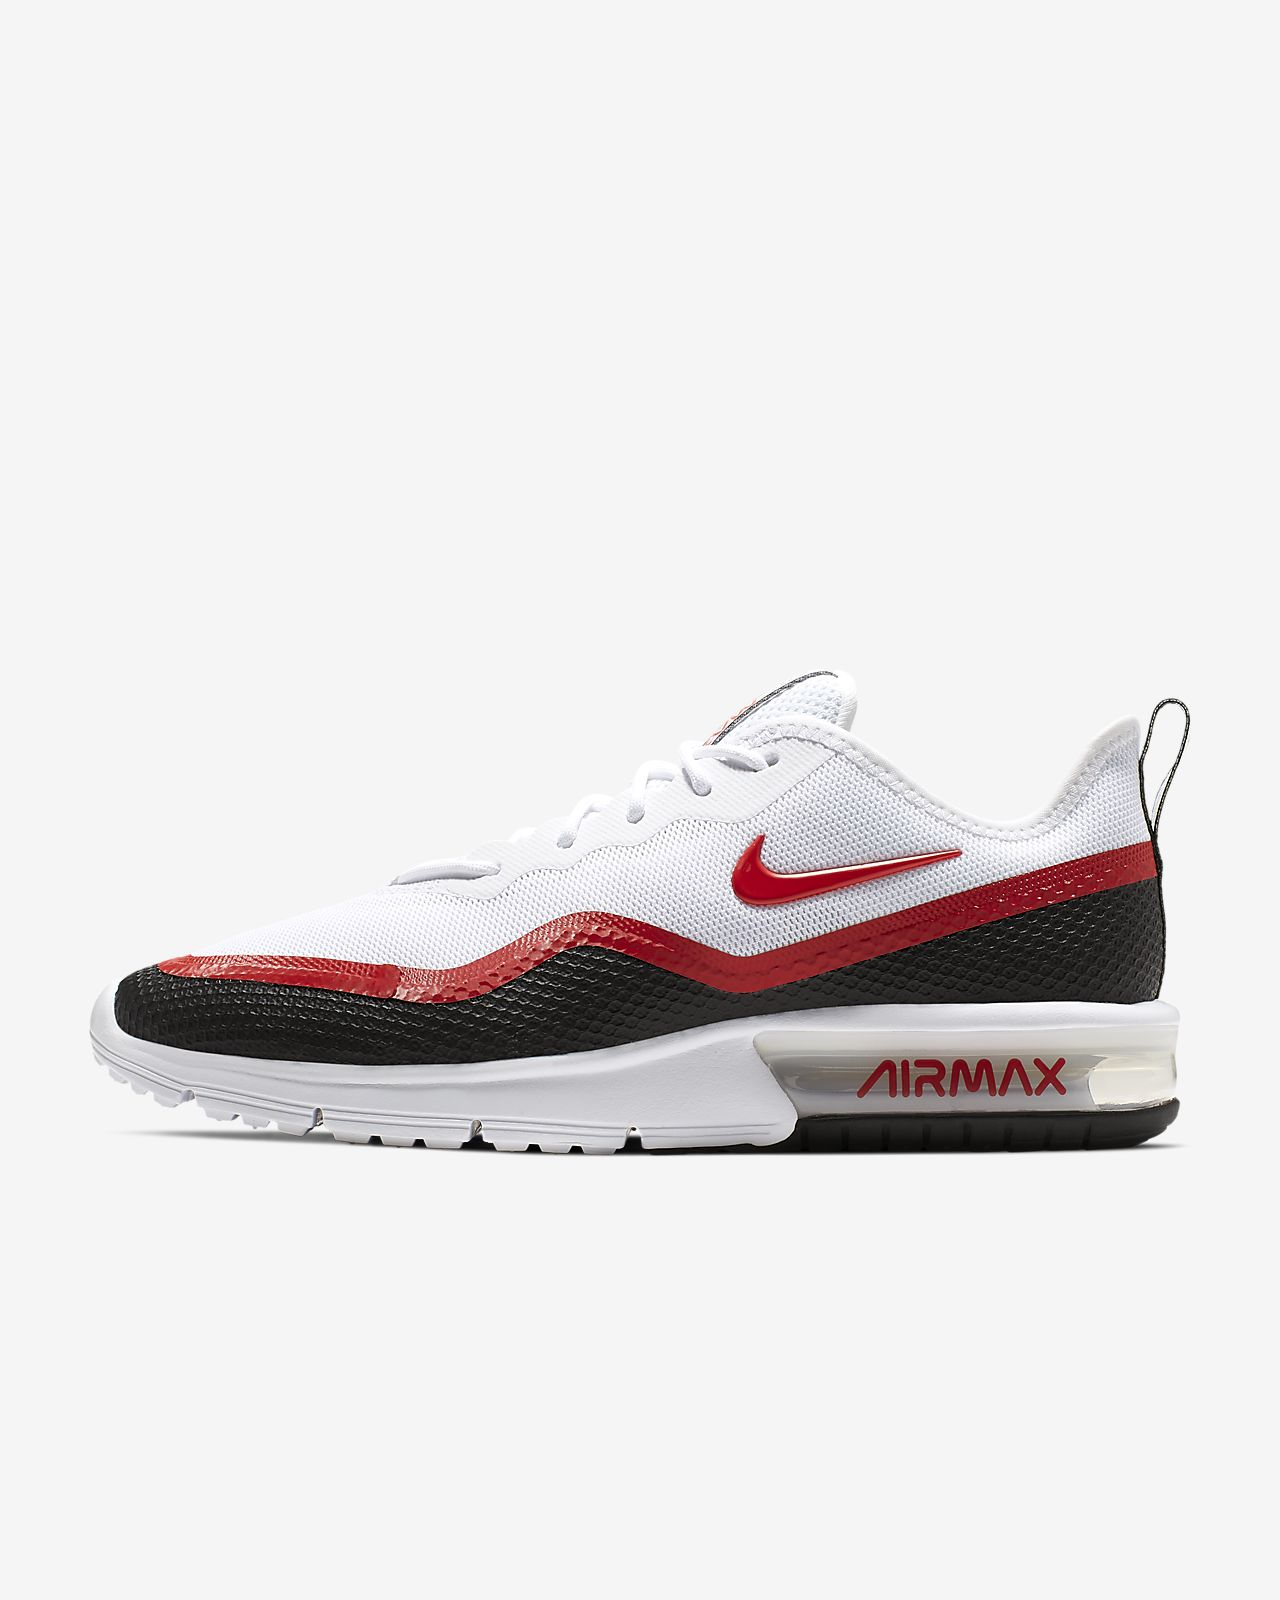 reputable site 8ef6b 743bd ... Chaussure Nike Air Max Sequent 4.5 SE pour Homme